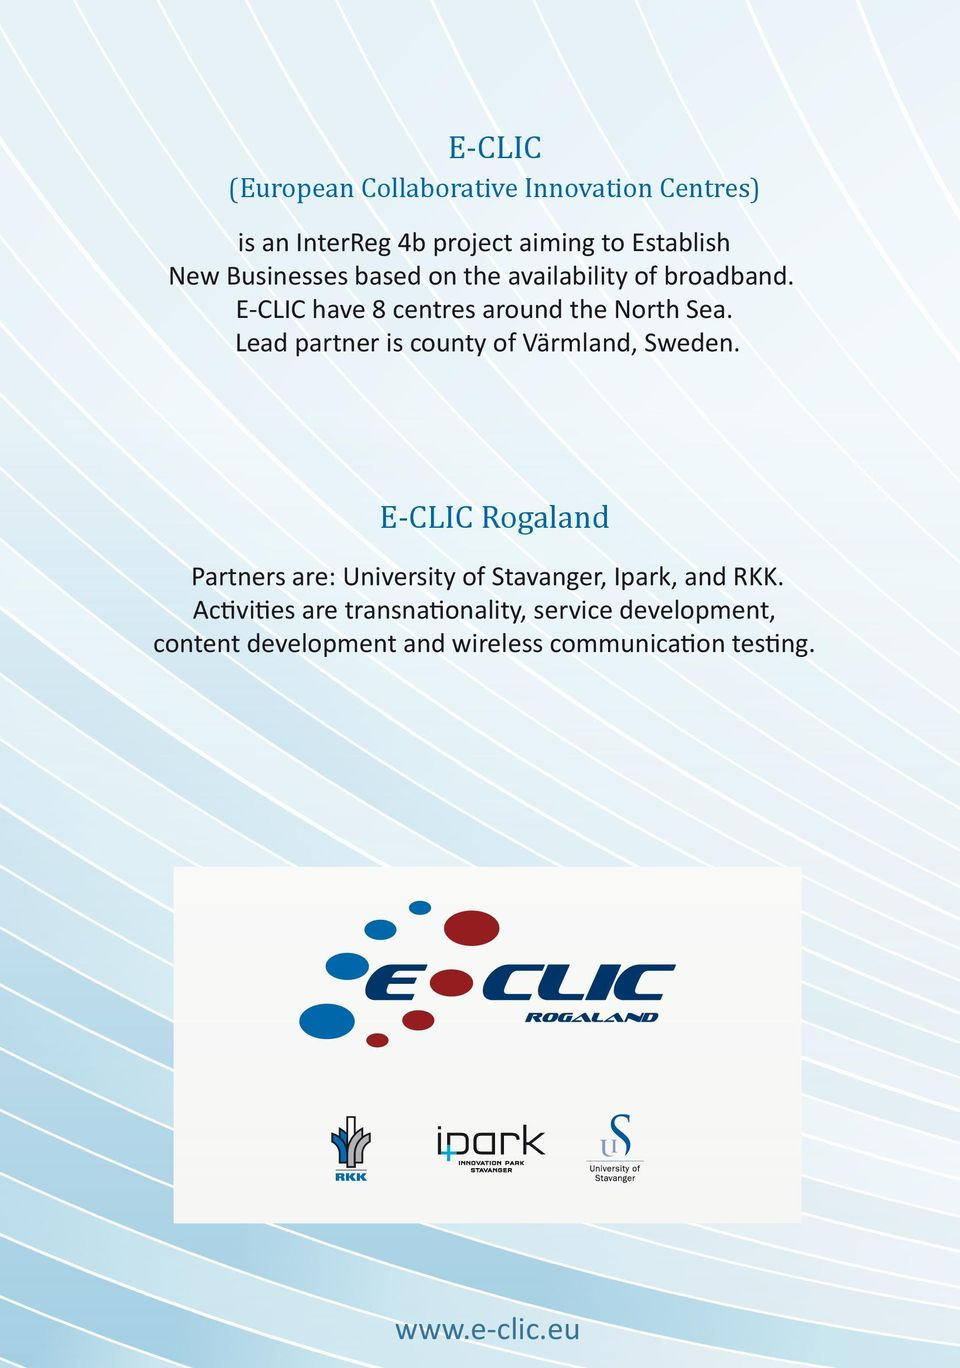 Lead partner is county of Värmland, Sweden. E-CLIC Rogaland Partners are:, Ipark, and RKK.